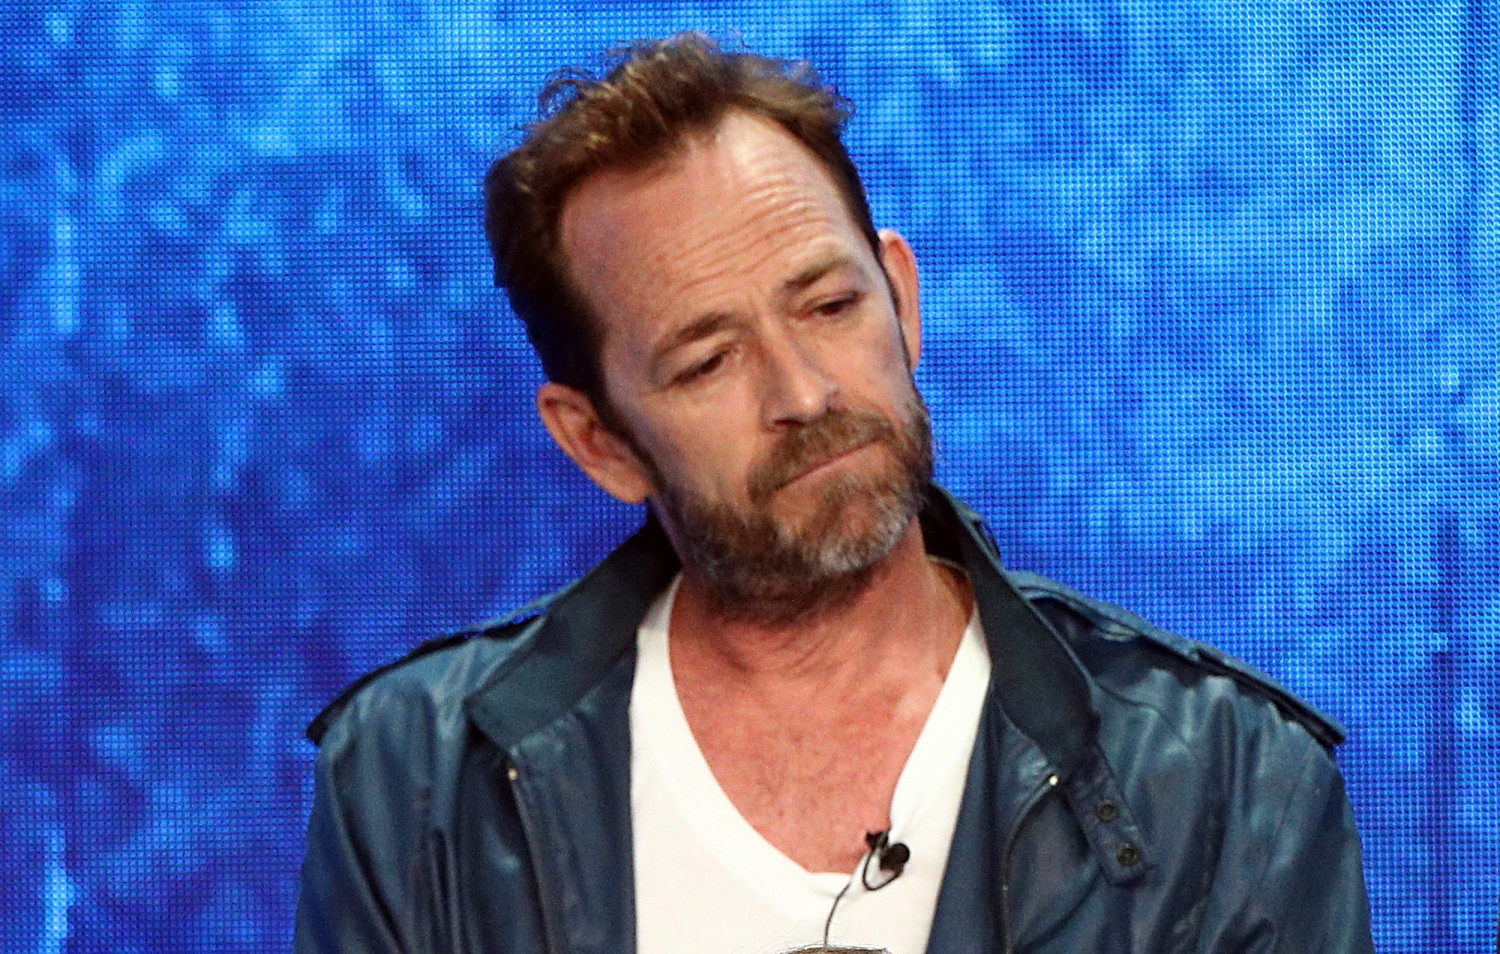 Luke Perry's son cancels appearance